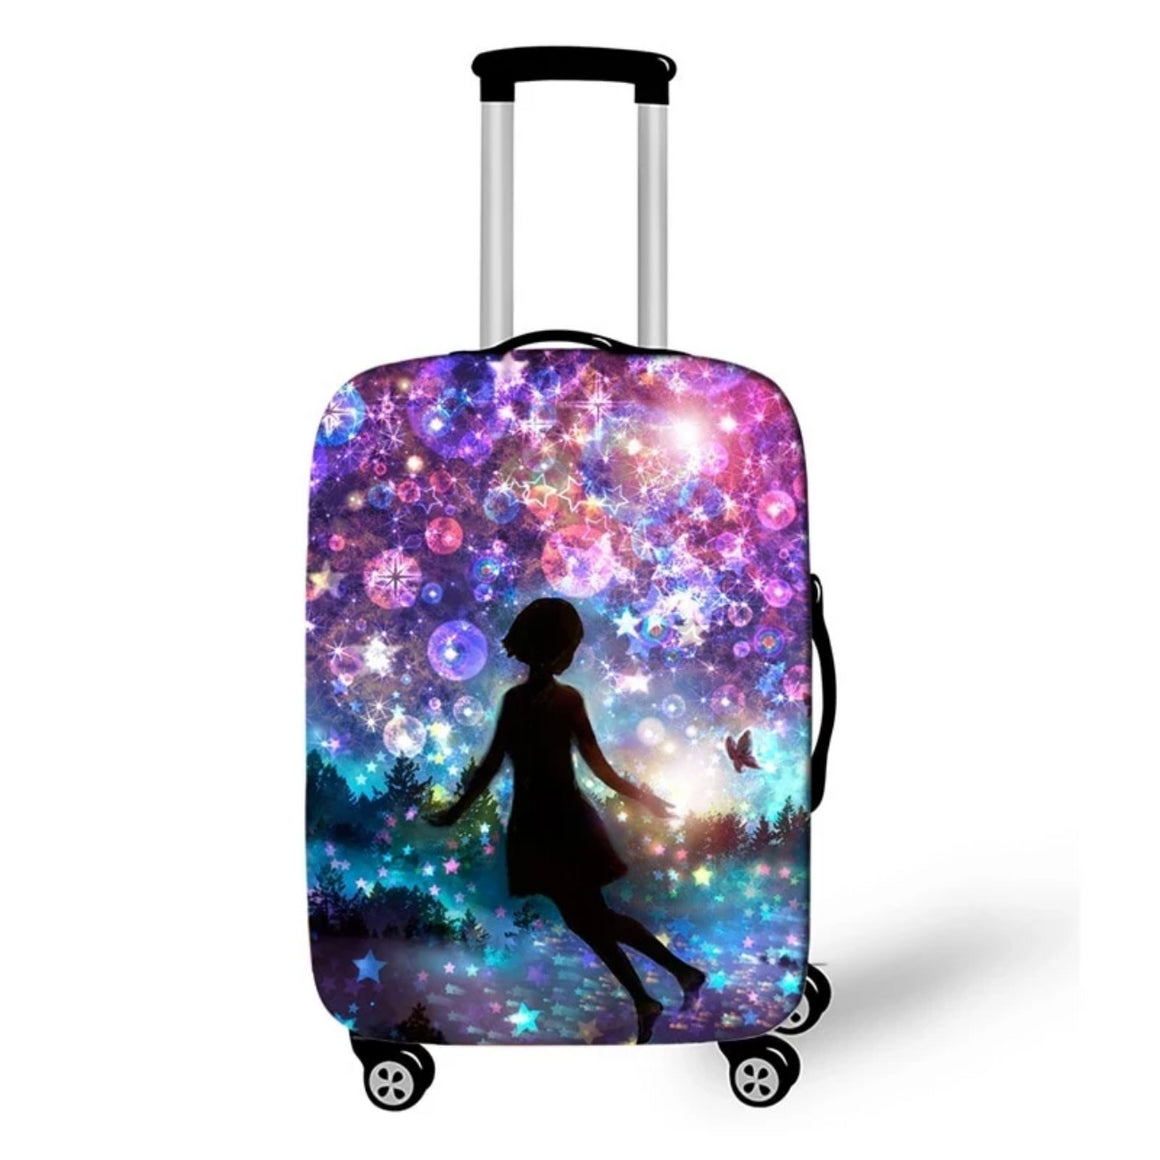 Girls Luggage Protective Covers Cartoon Silhouette Travel Suitcase Protector For Women Girls Suitcase Accessories Bagage Cover